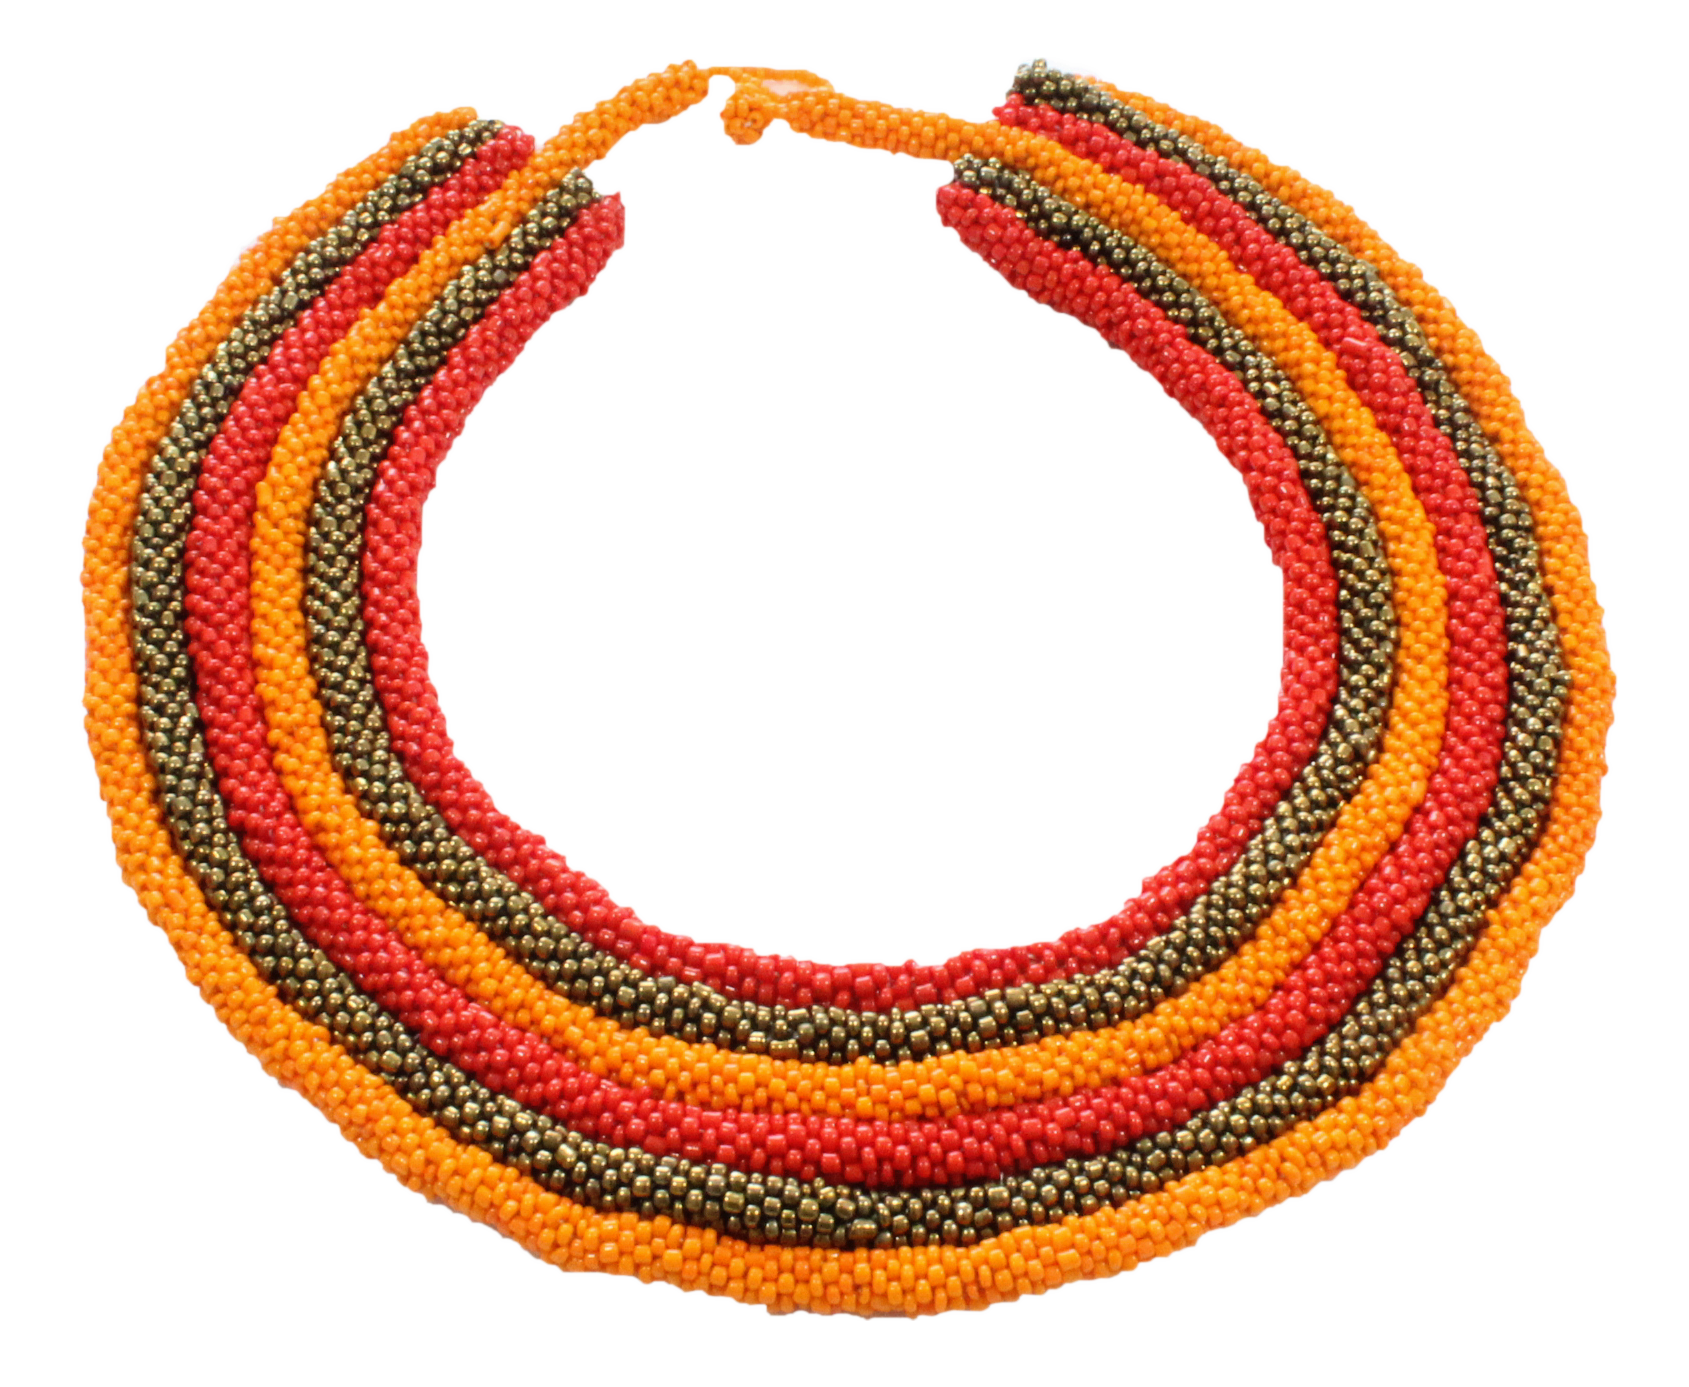 African handmade necklace multilayered beads gold orange red